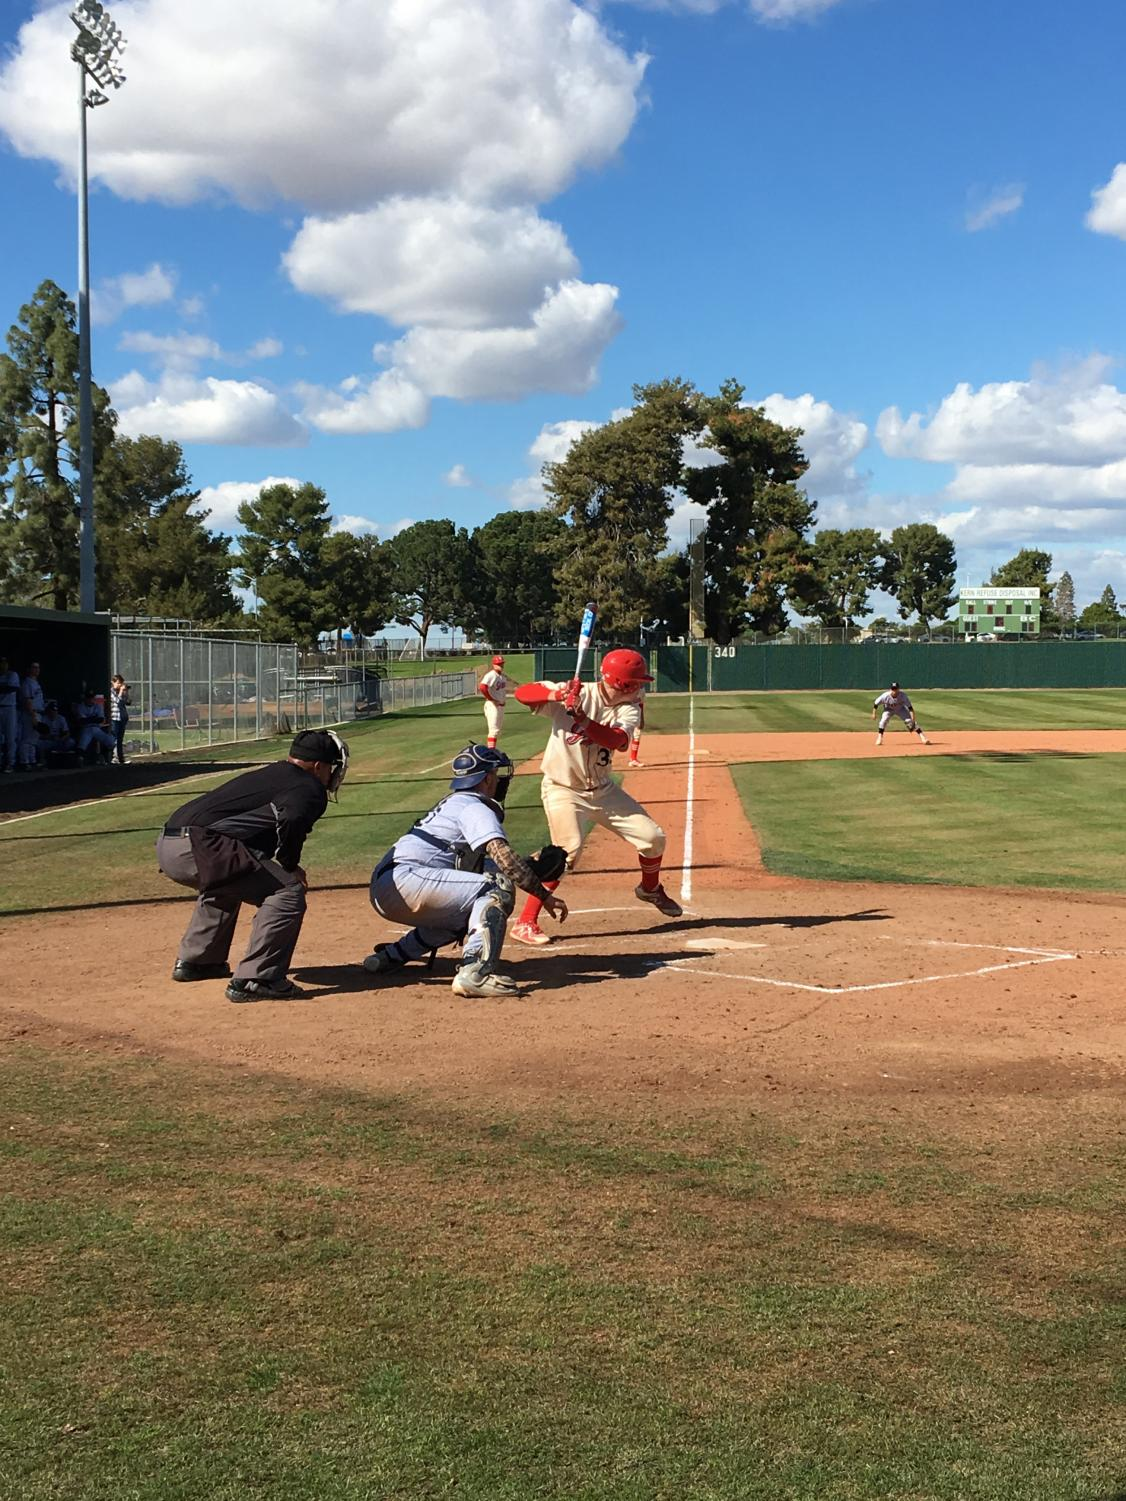 1.	BC player Zach Williams preparing for a pitch against LA Mission College in the bottom of the first inning on March 15.